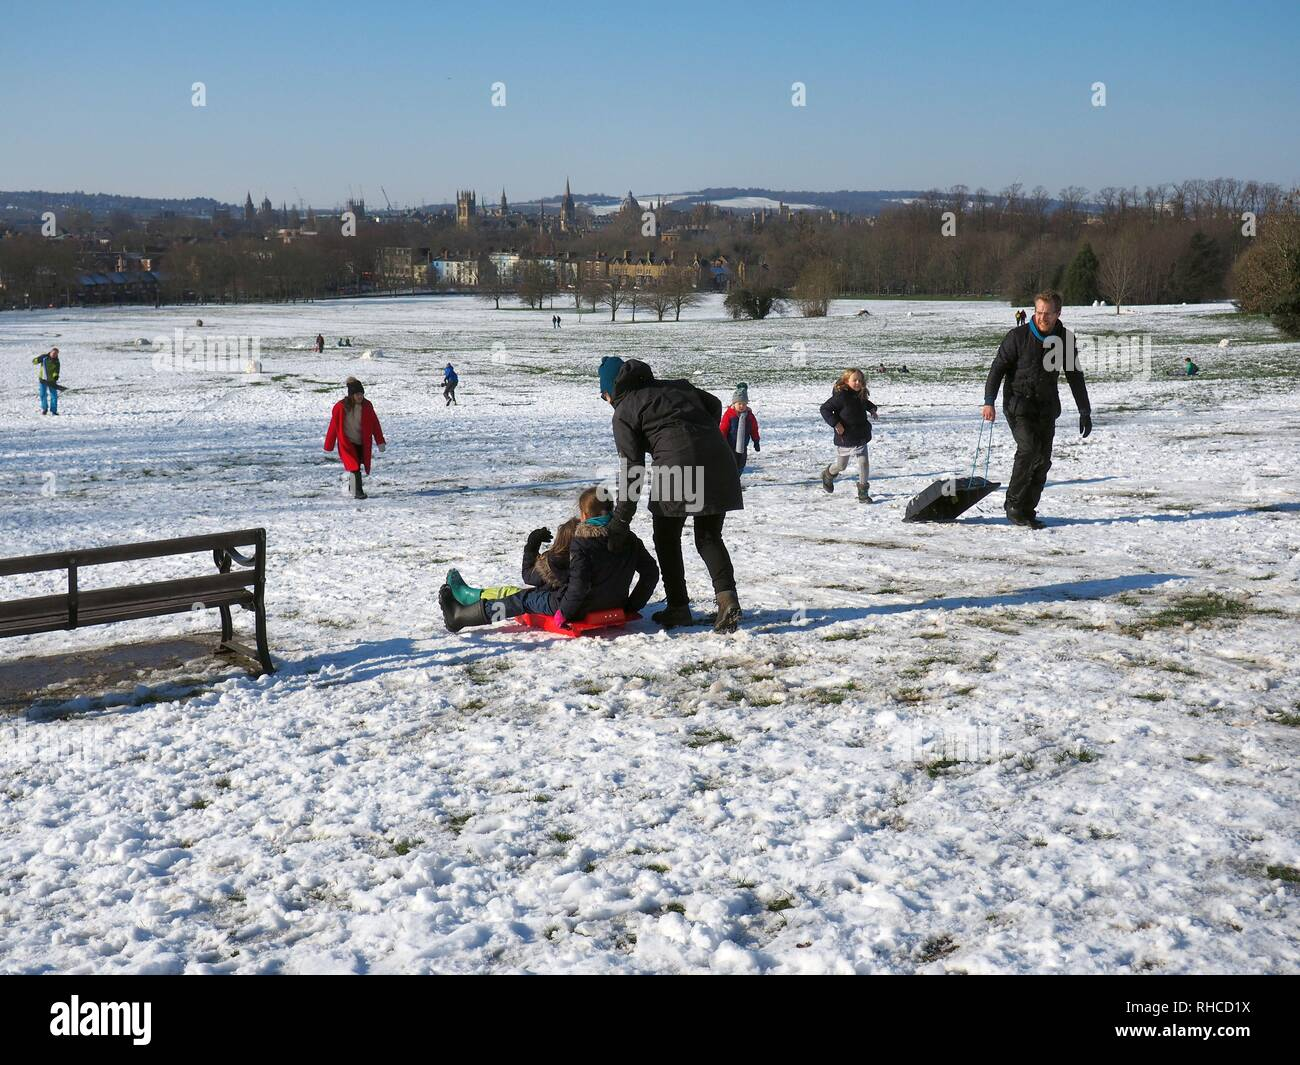 Oxford, UK. 2nd Feb, 2019. Familes sledging at South Park above the dreaming spires. Credit: Angela Swann/Alamy Live News - Stock Image